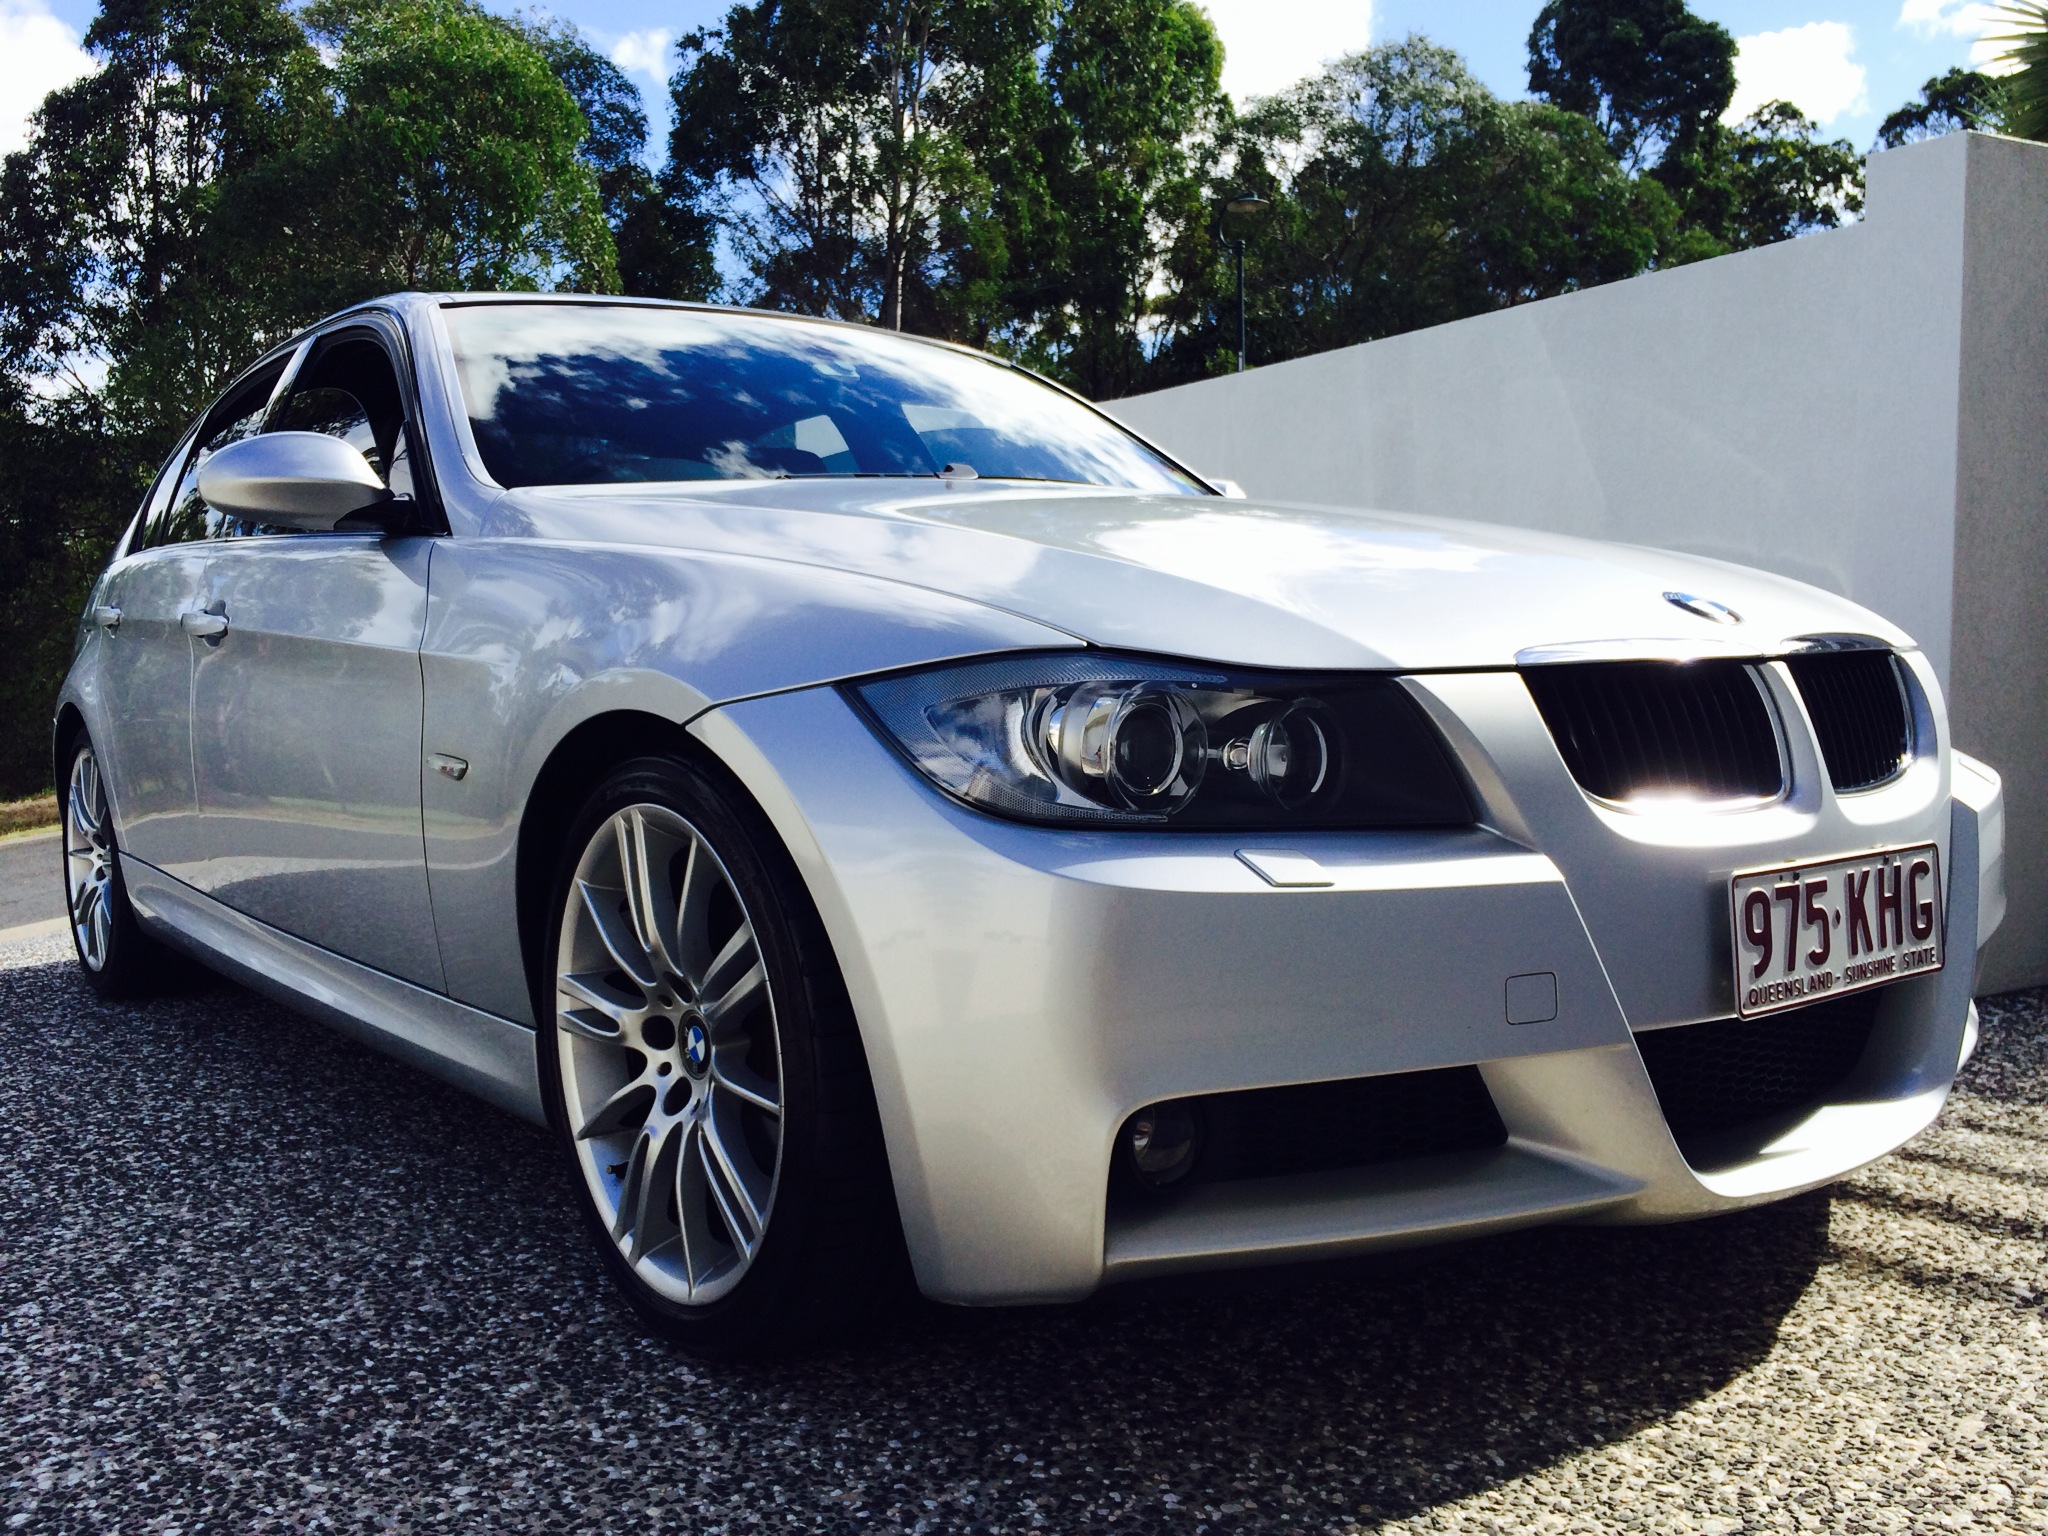 2007 bmw 320i executive e90 08 upgrade for sale qld. Black Bedroom Furniture Sets. Home Design Ideas